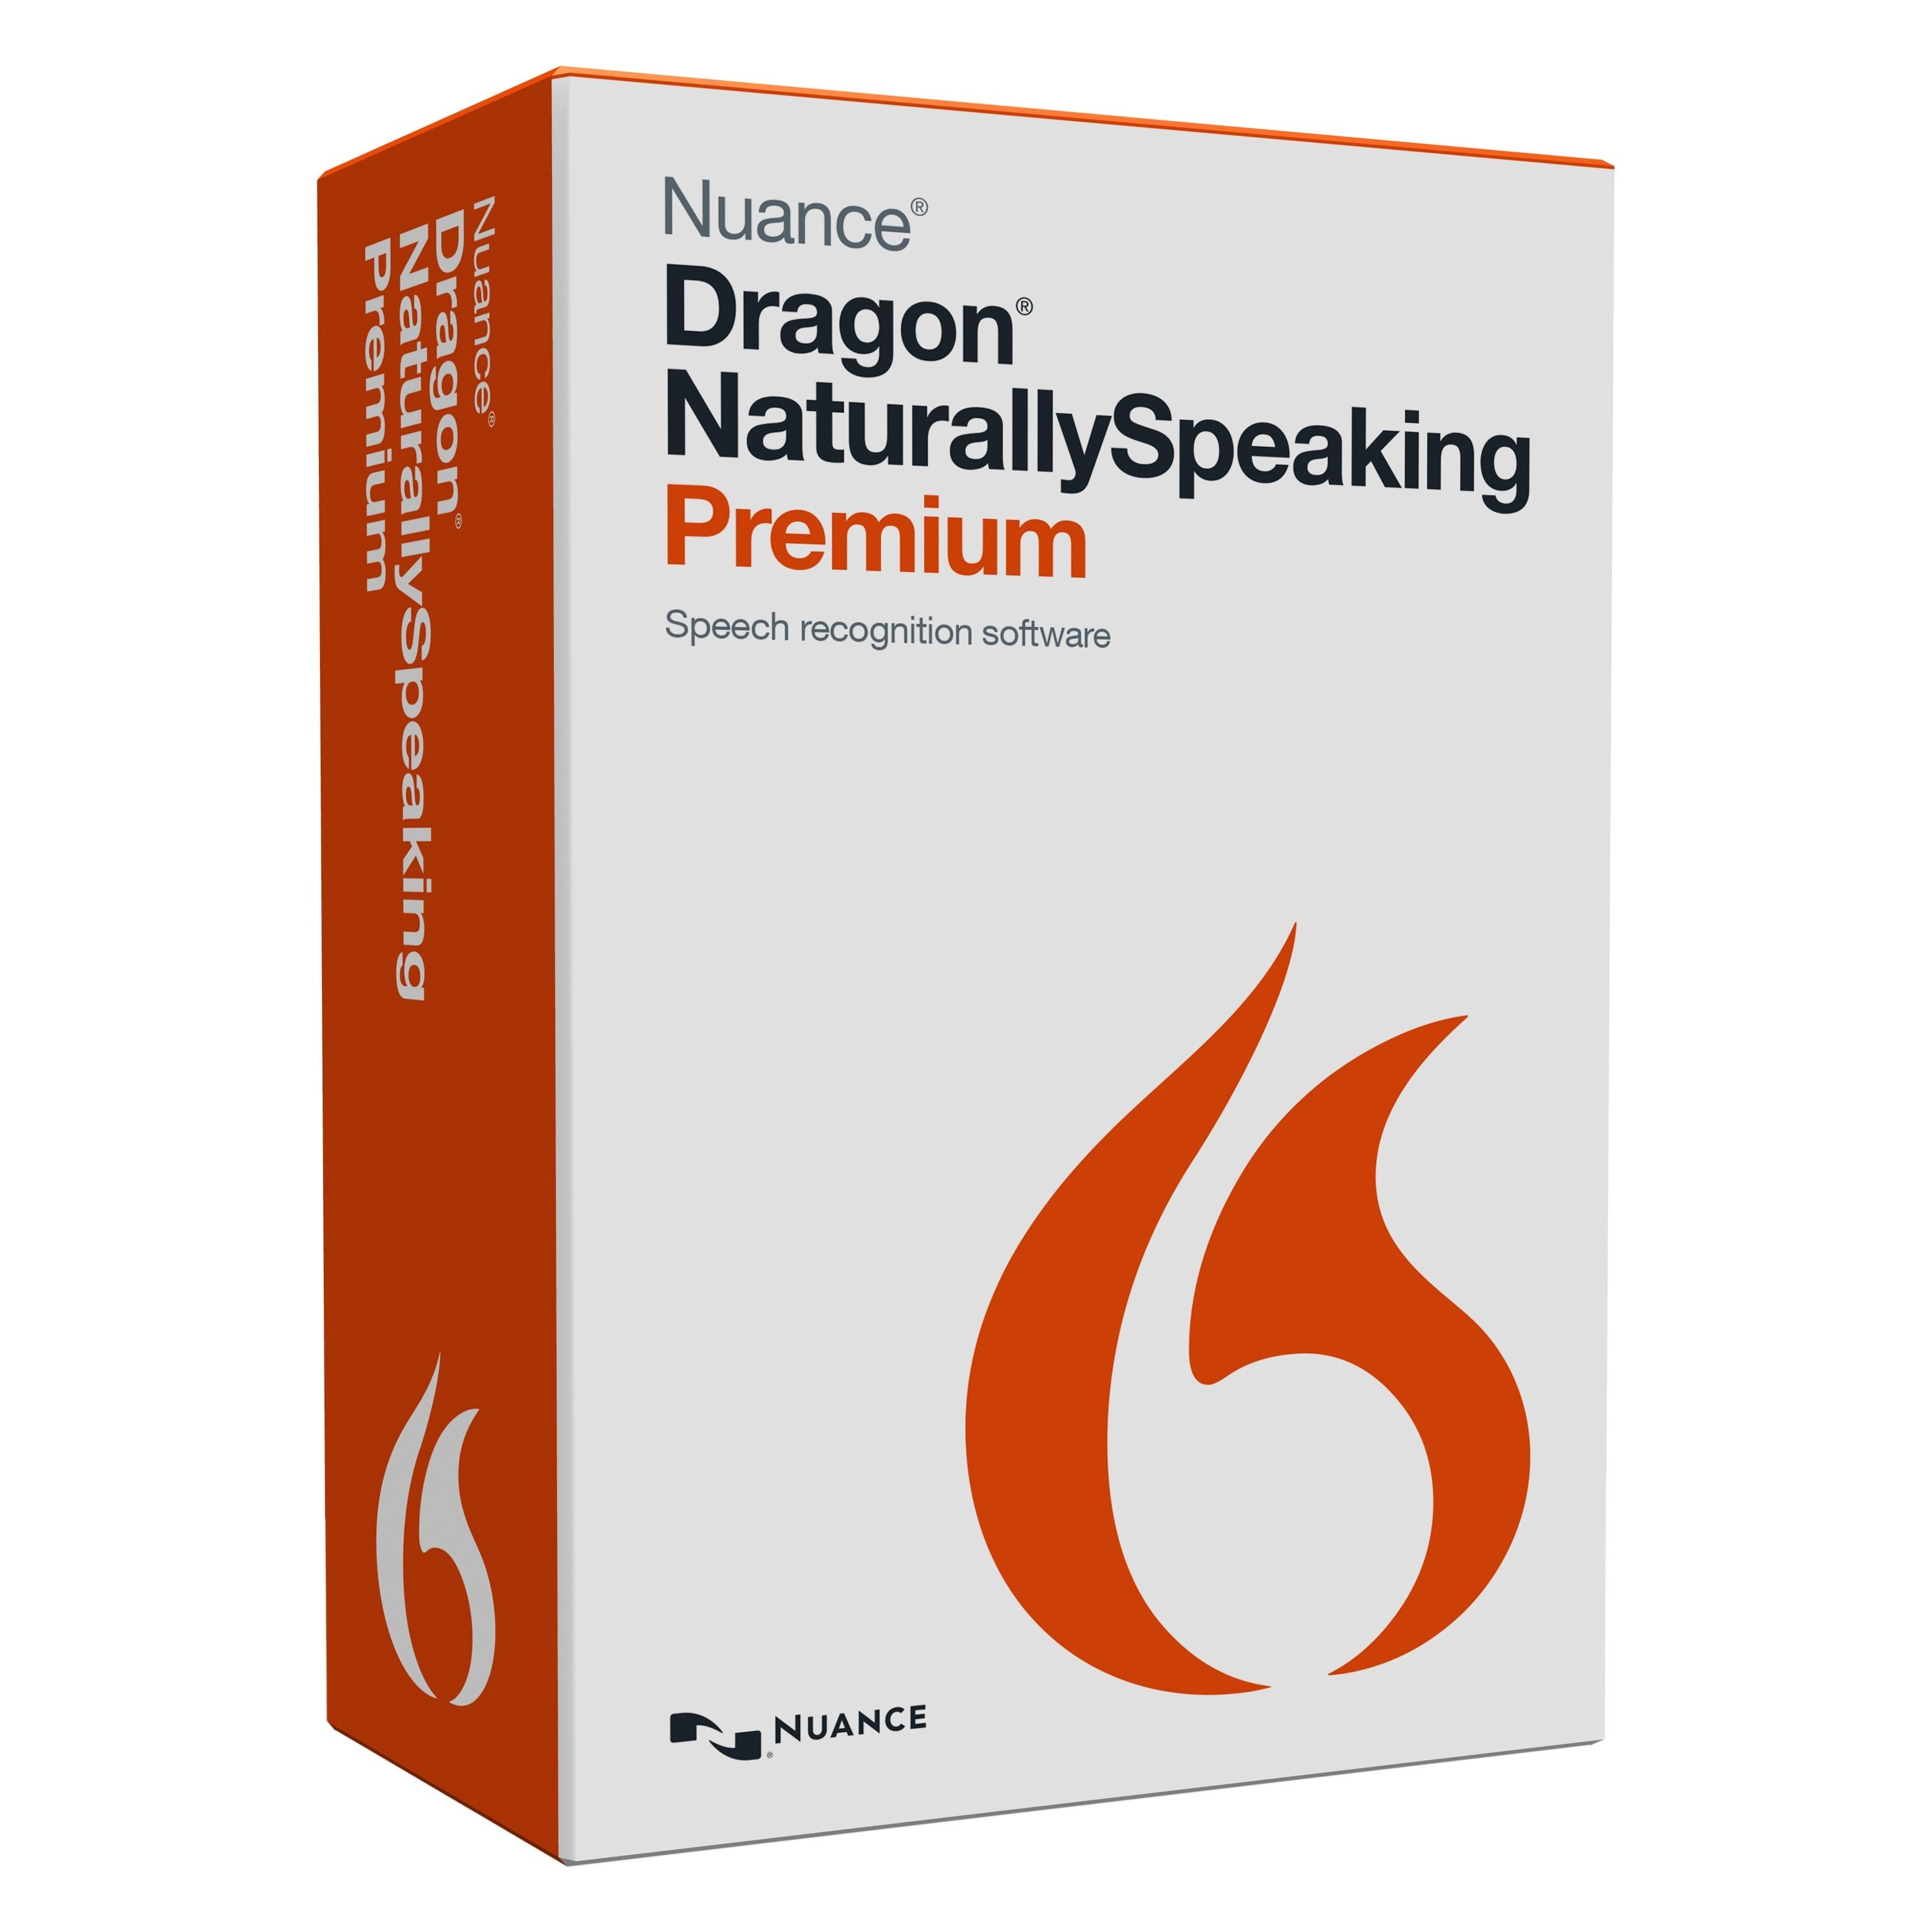 NUANCE Dragon Naturallyspeaking V.13.0 Premium - 1 User -...